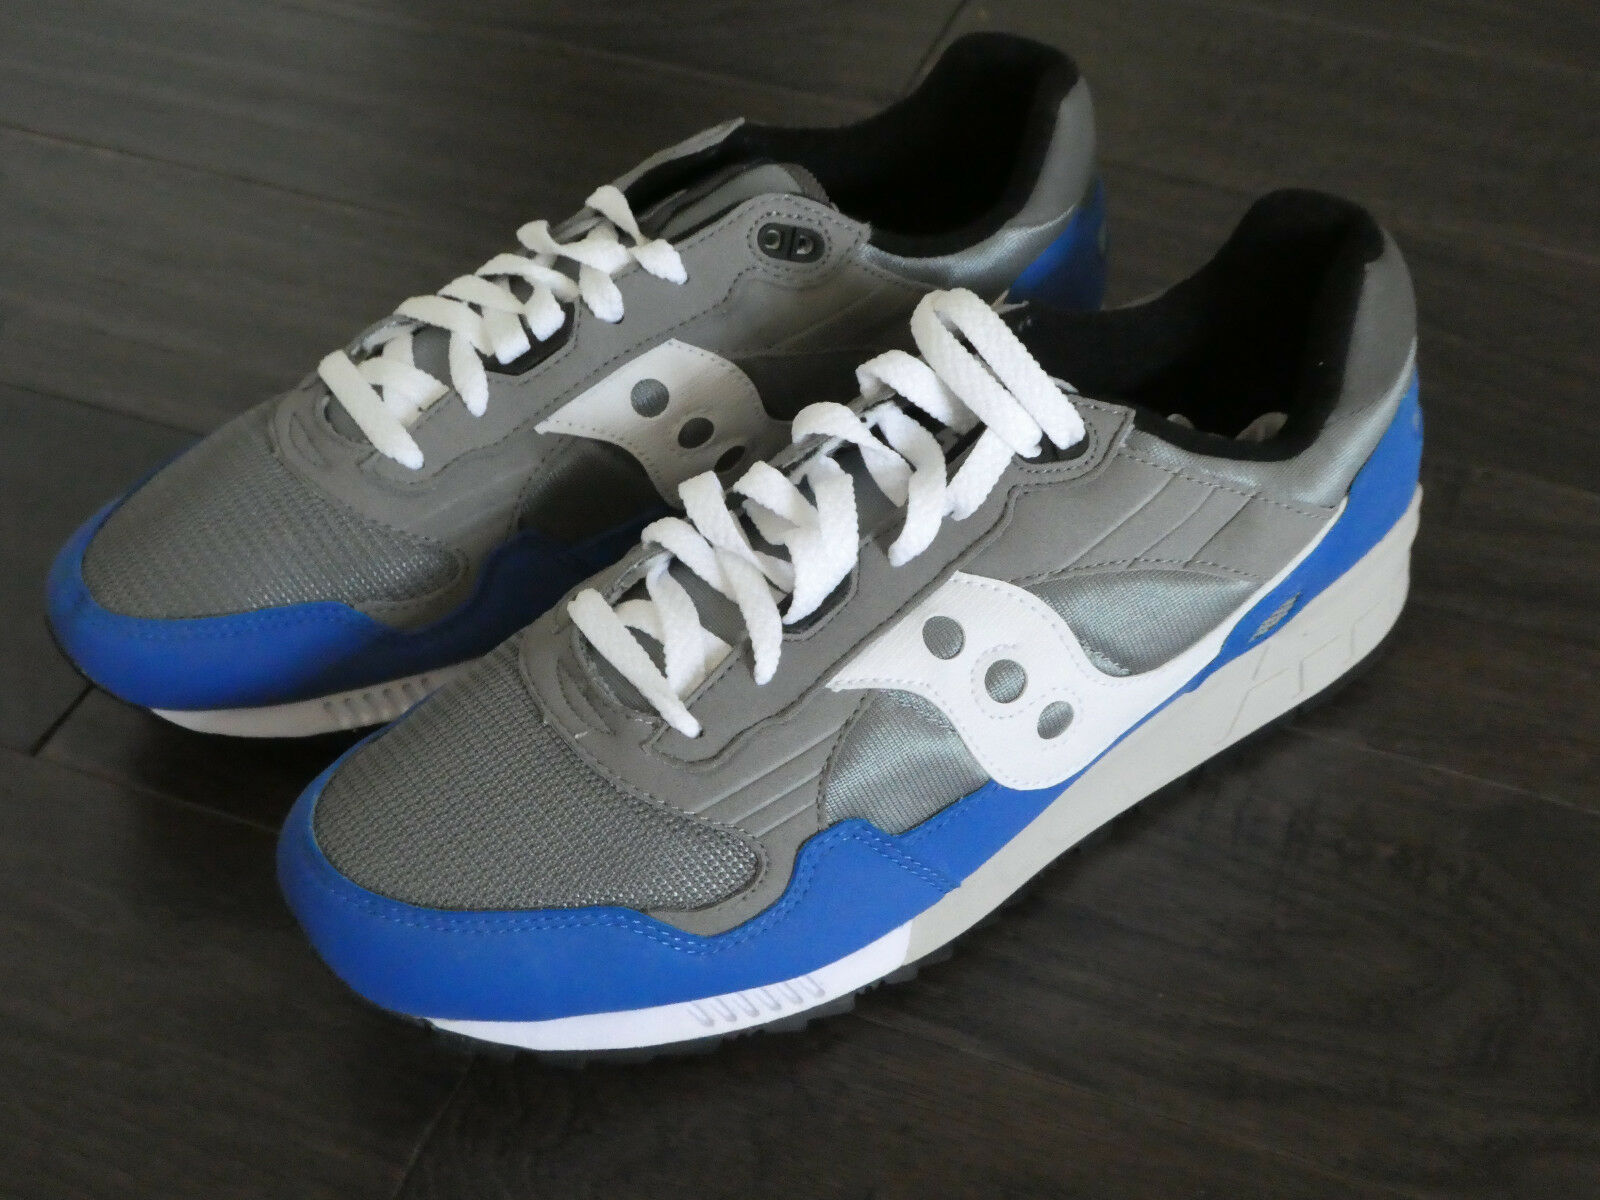 Saucony Shadow 5000 shoes mens new sneakers 70033-21 grey bluee